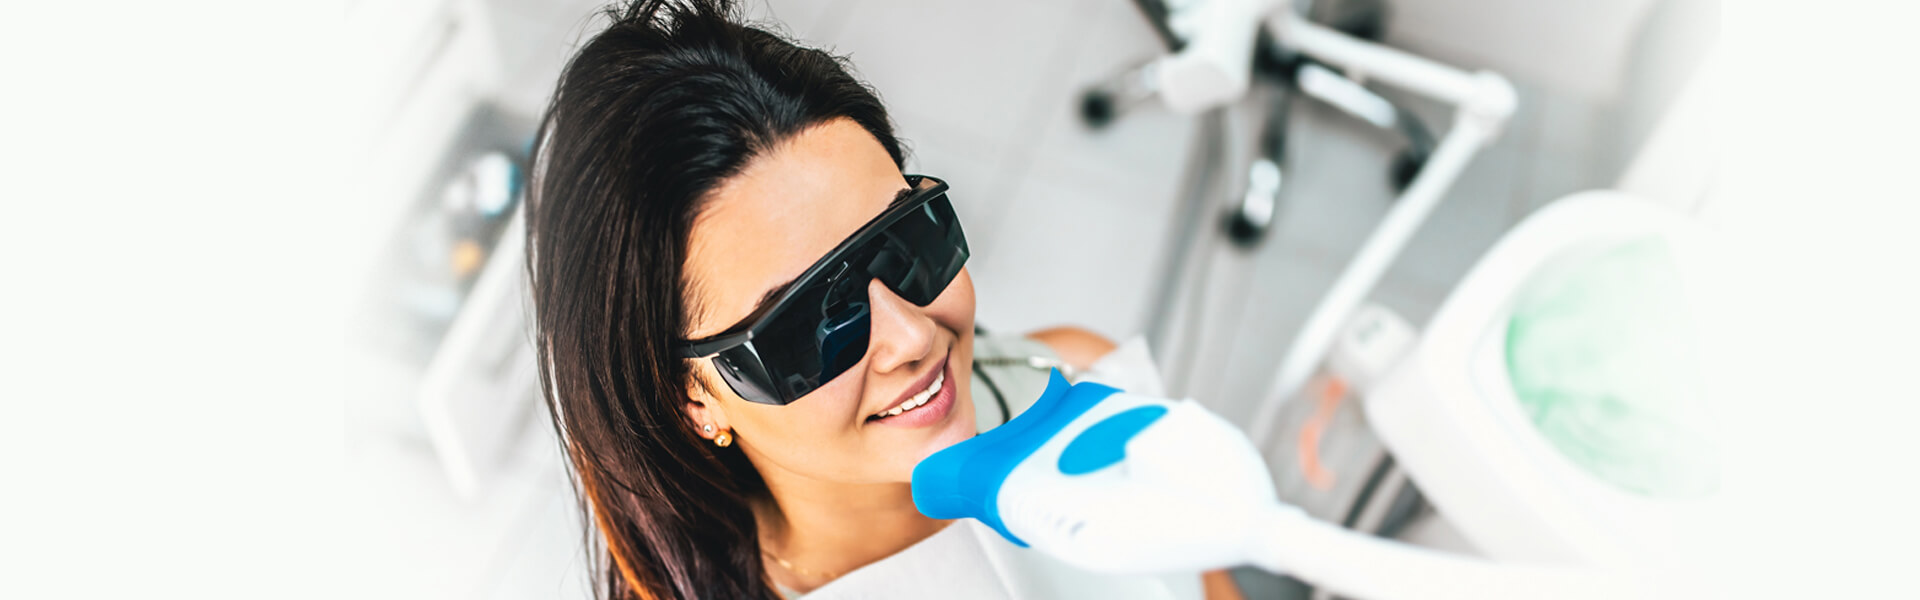 Afraid of Laser Dentistry: the Reasons Discussed in This Blog Should Comfort You